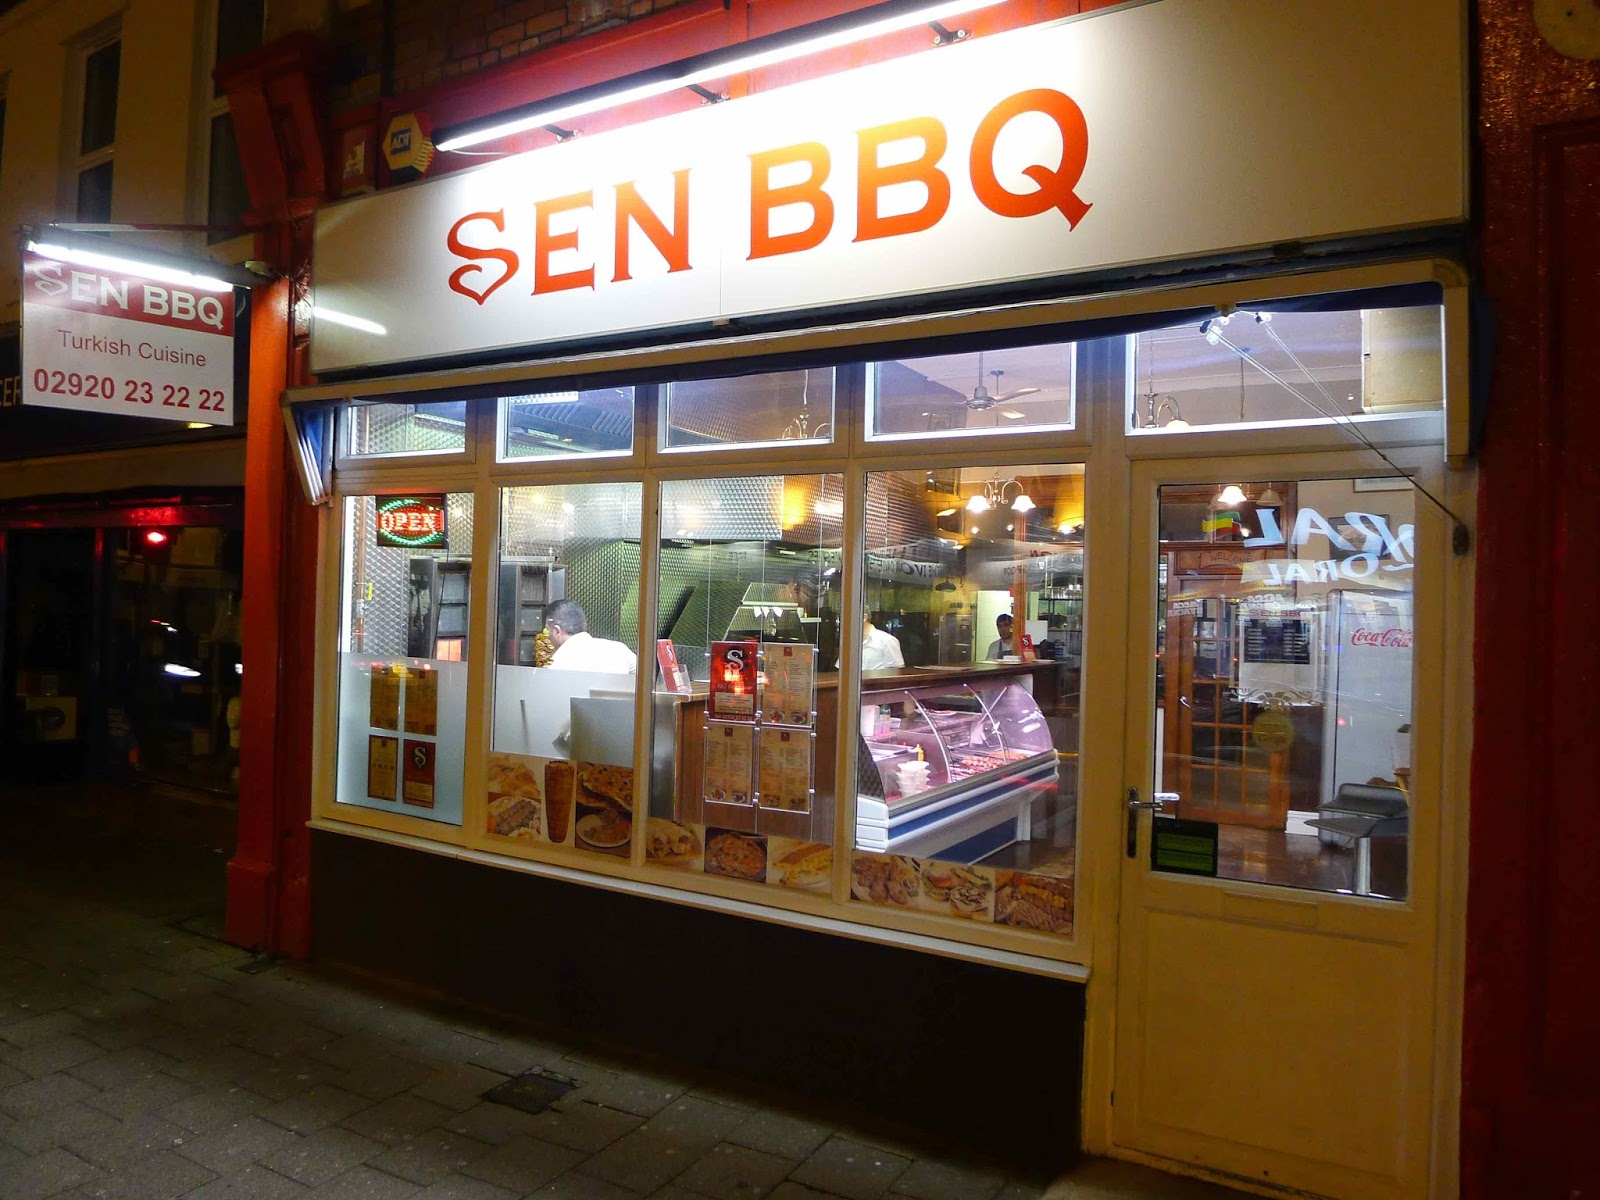 Barbecue Restaurant Rotterdam.Gourmet Gorro Cardiff Food Blog Featuring Restaurant Reviews From